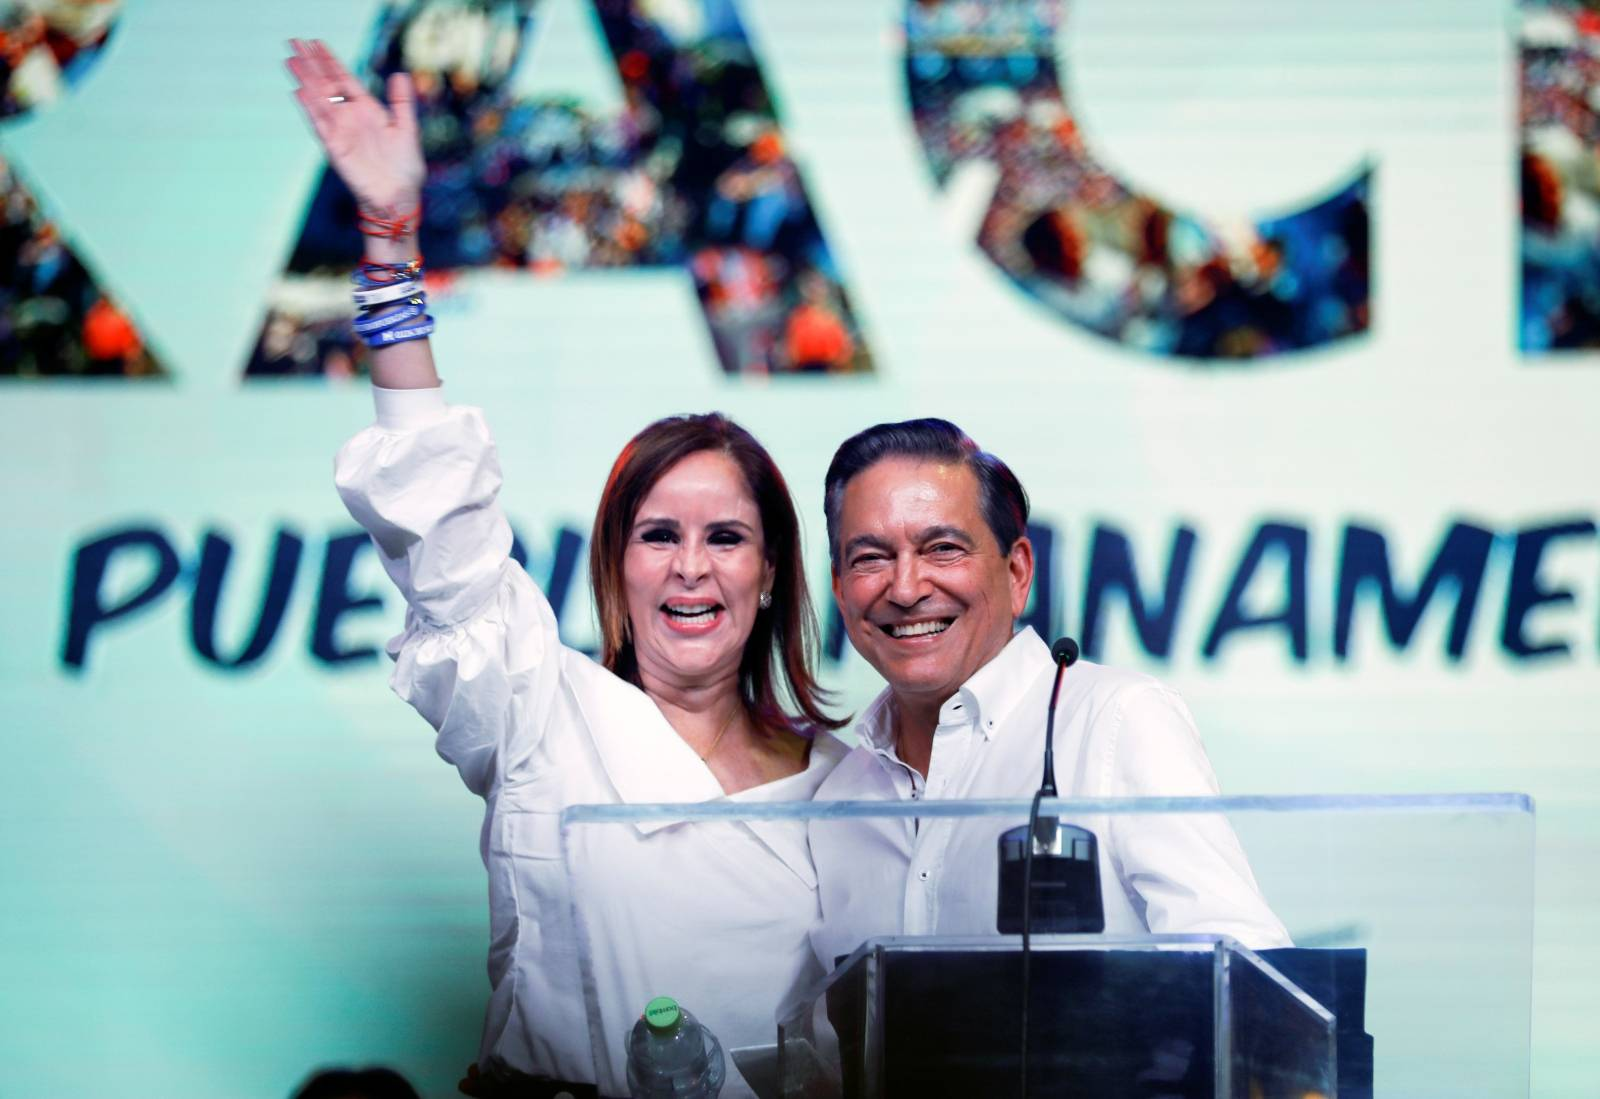 General election in Panama